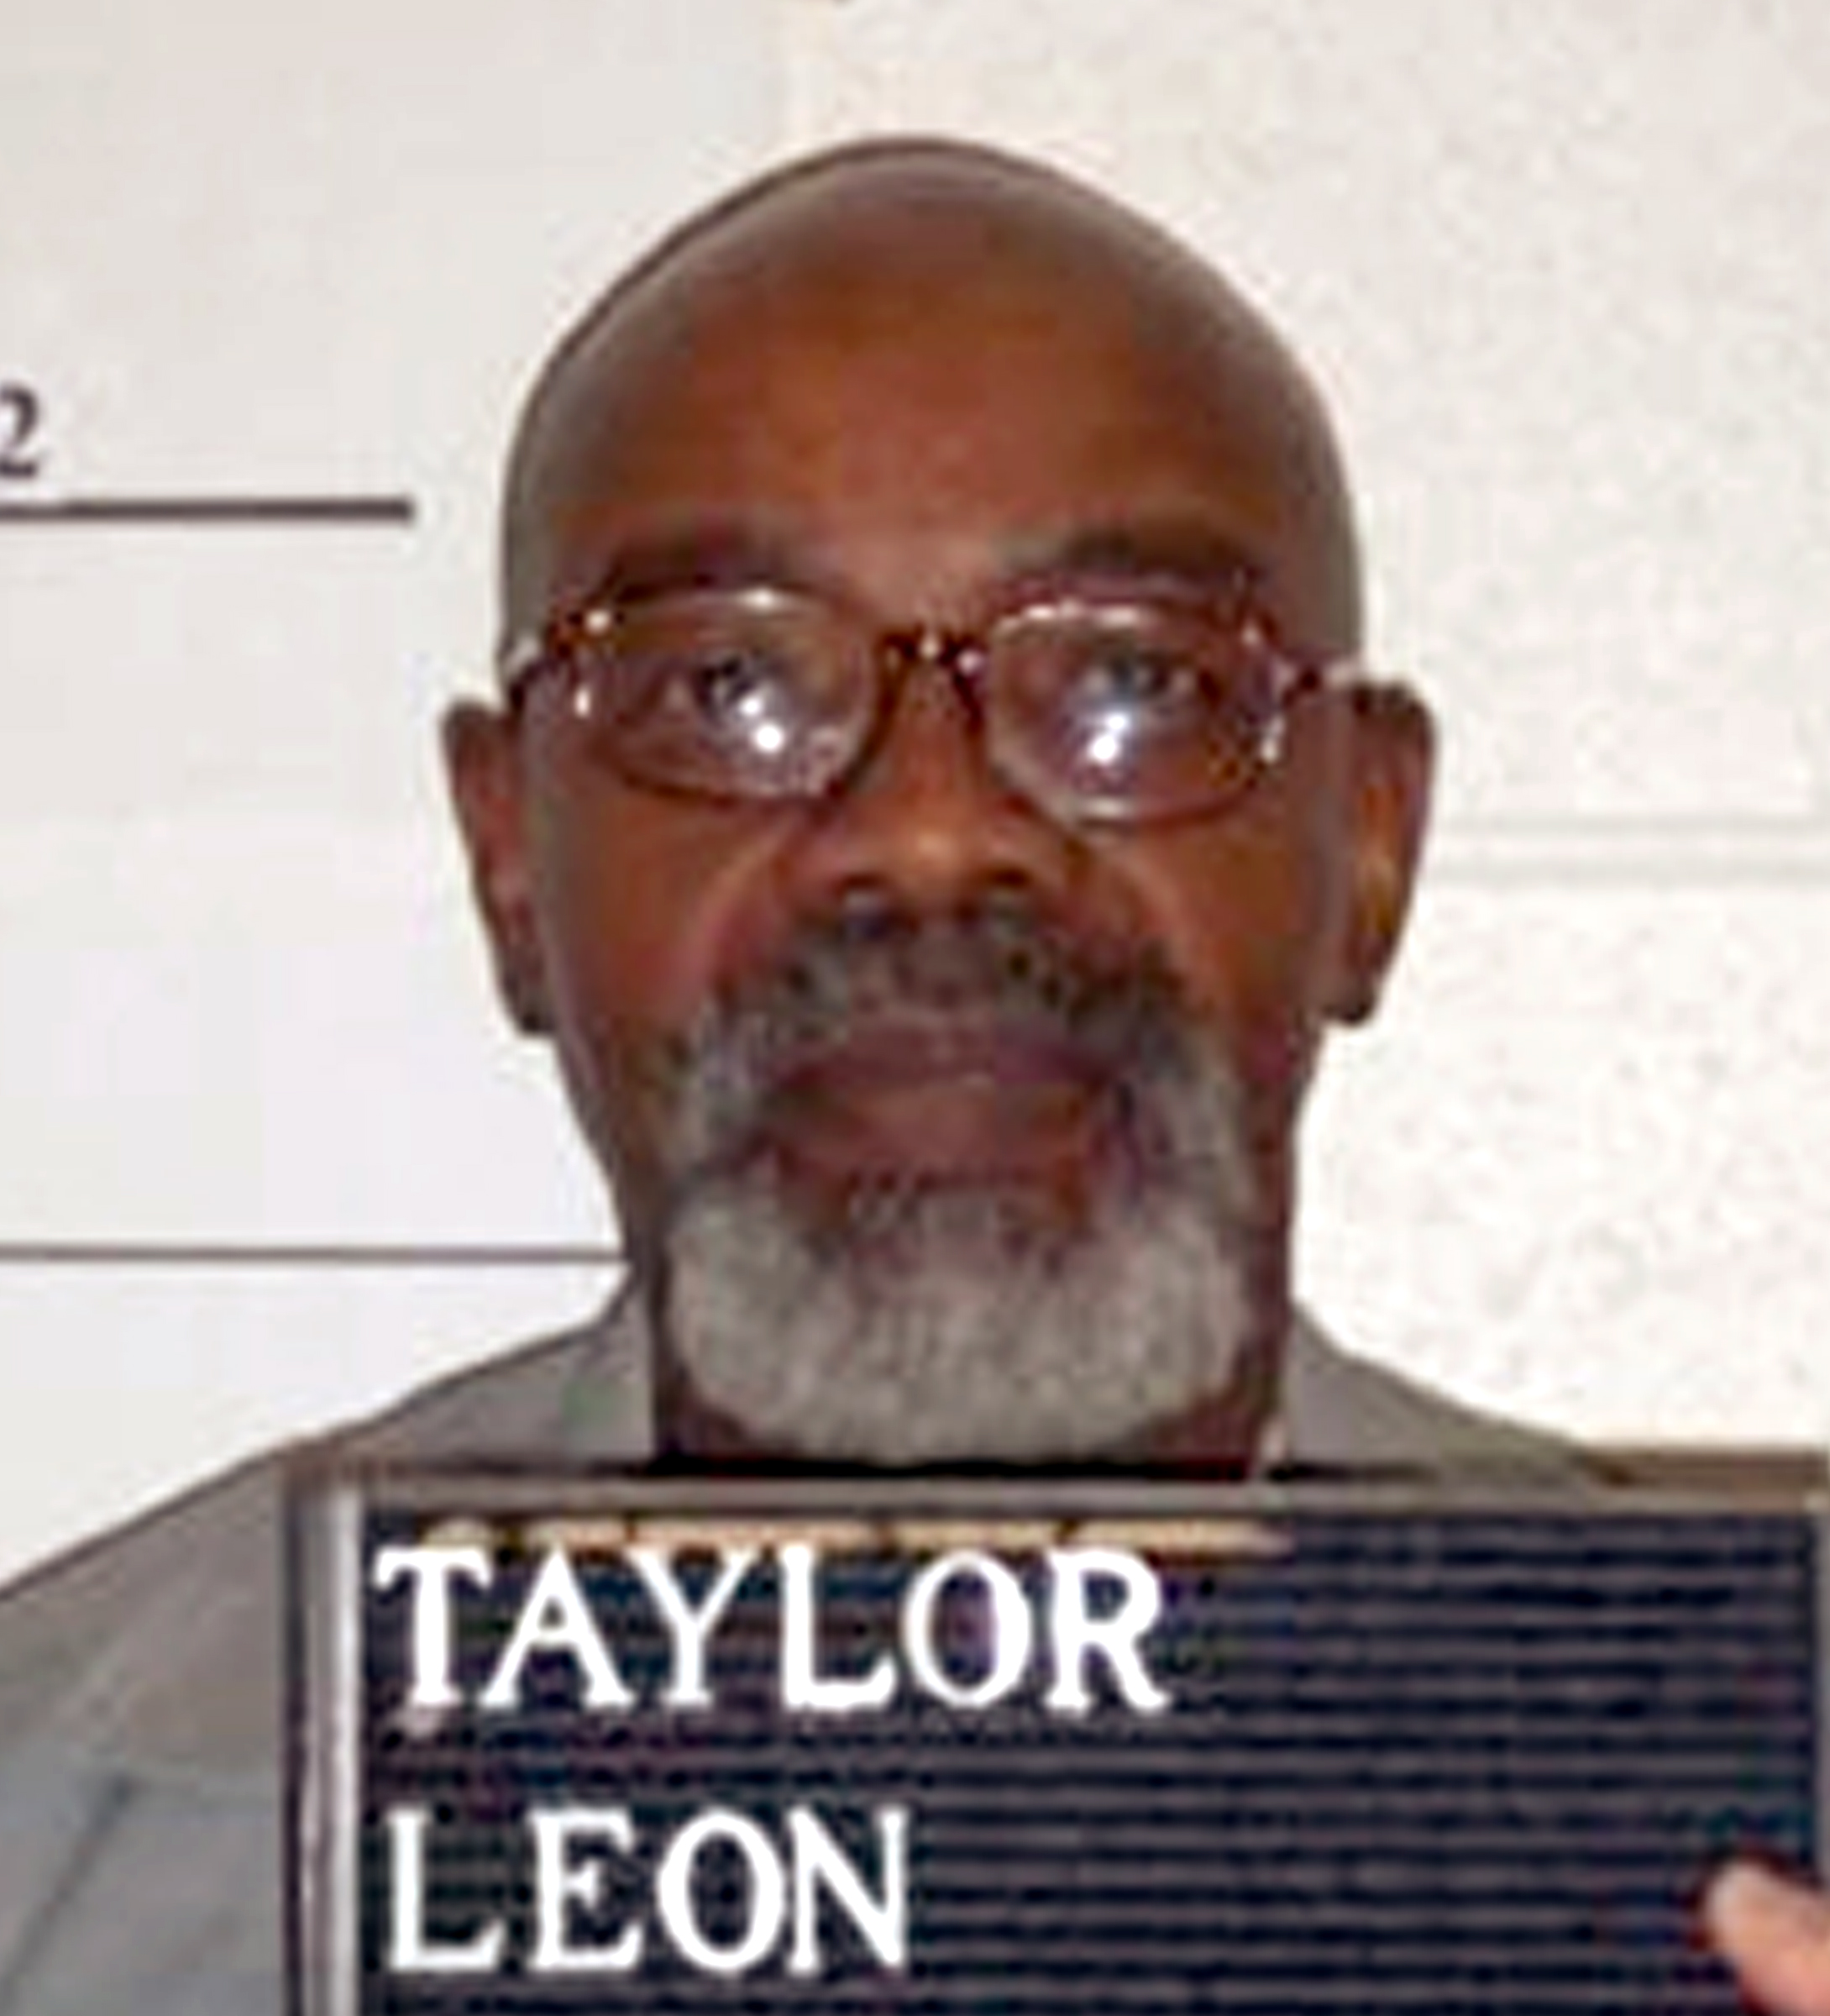 Leon Taylor, sentenced to death in the killing of a gas station attendant, was executed by lethal injection early Wednesday morning.